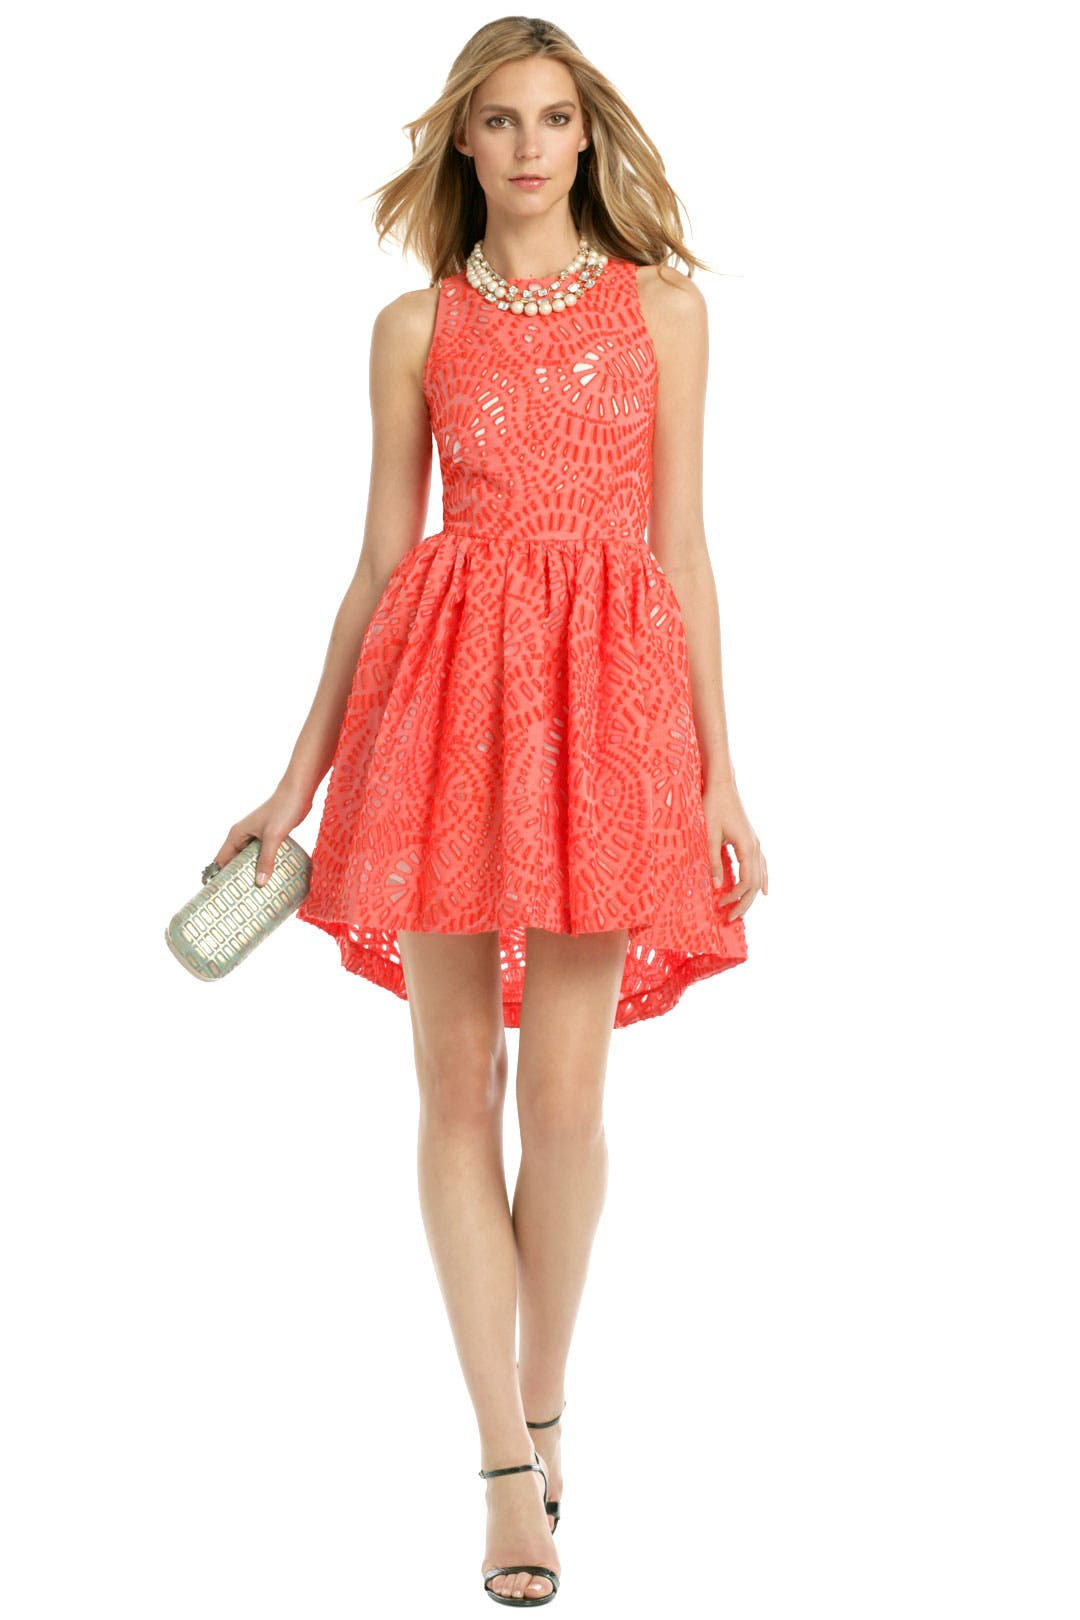 Watermelon Seed Dress by MSGM